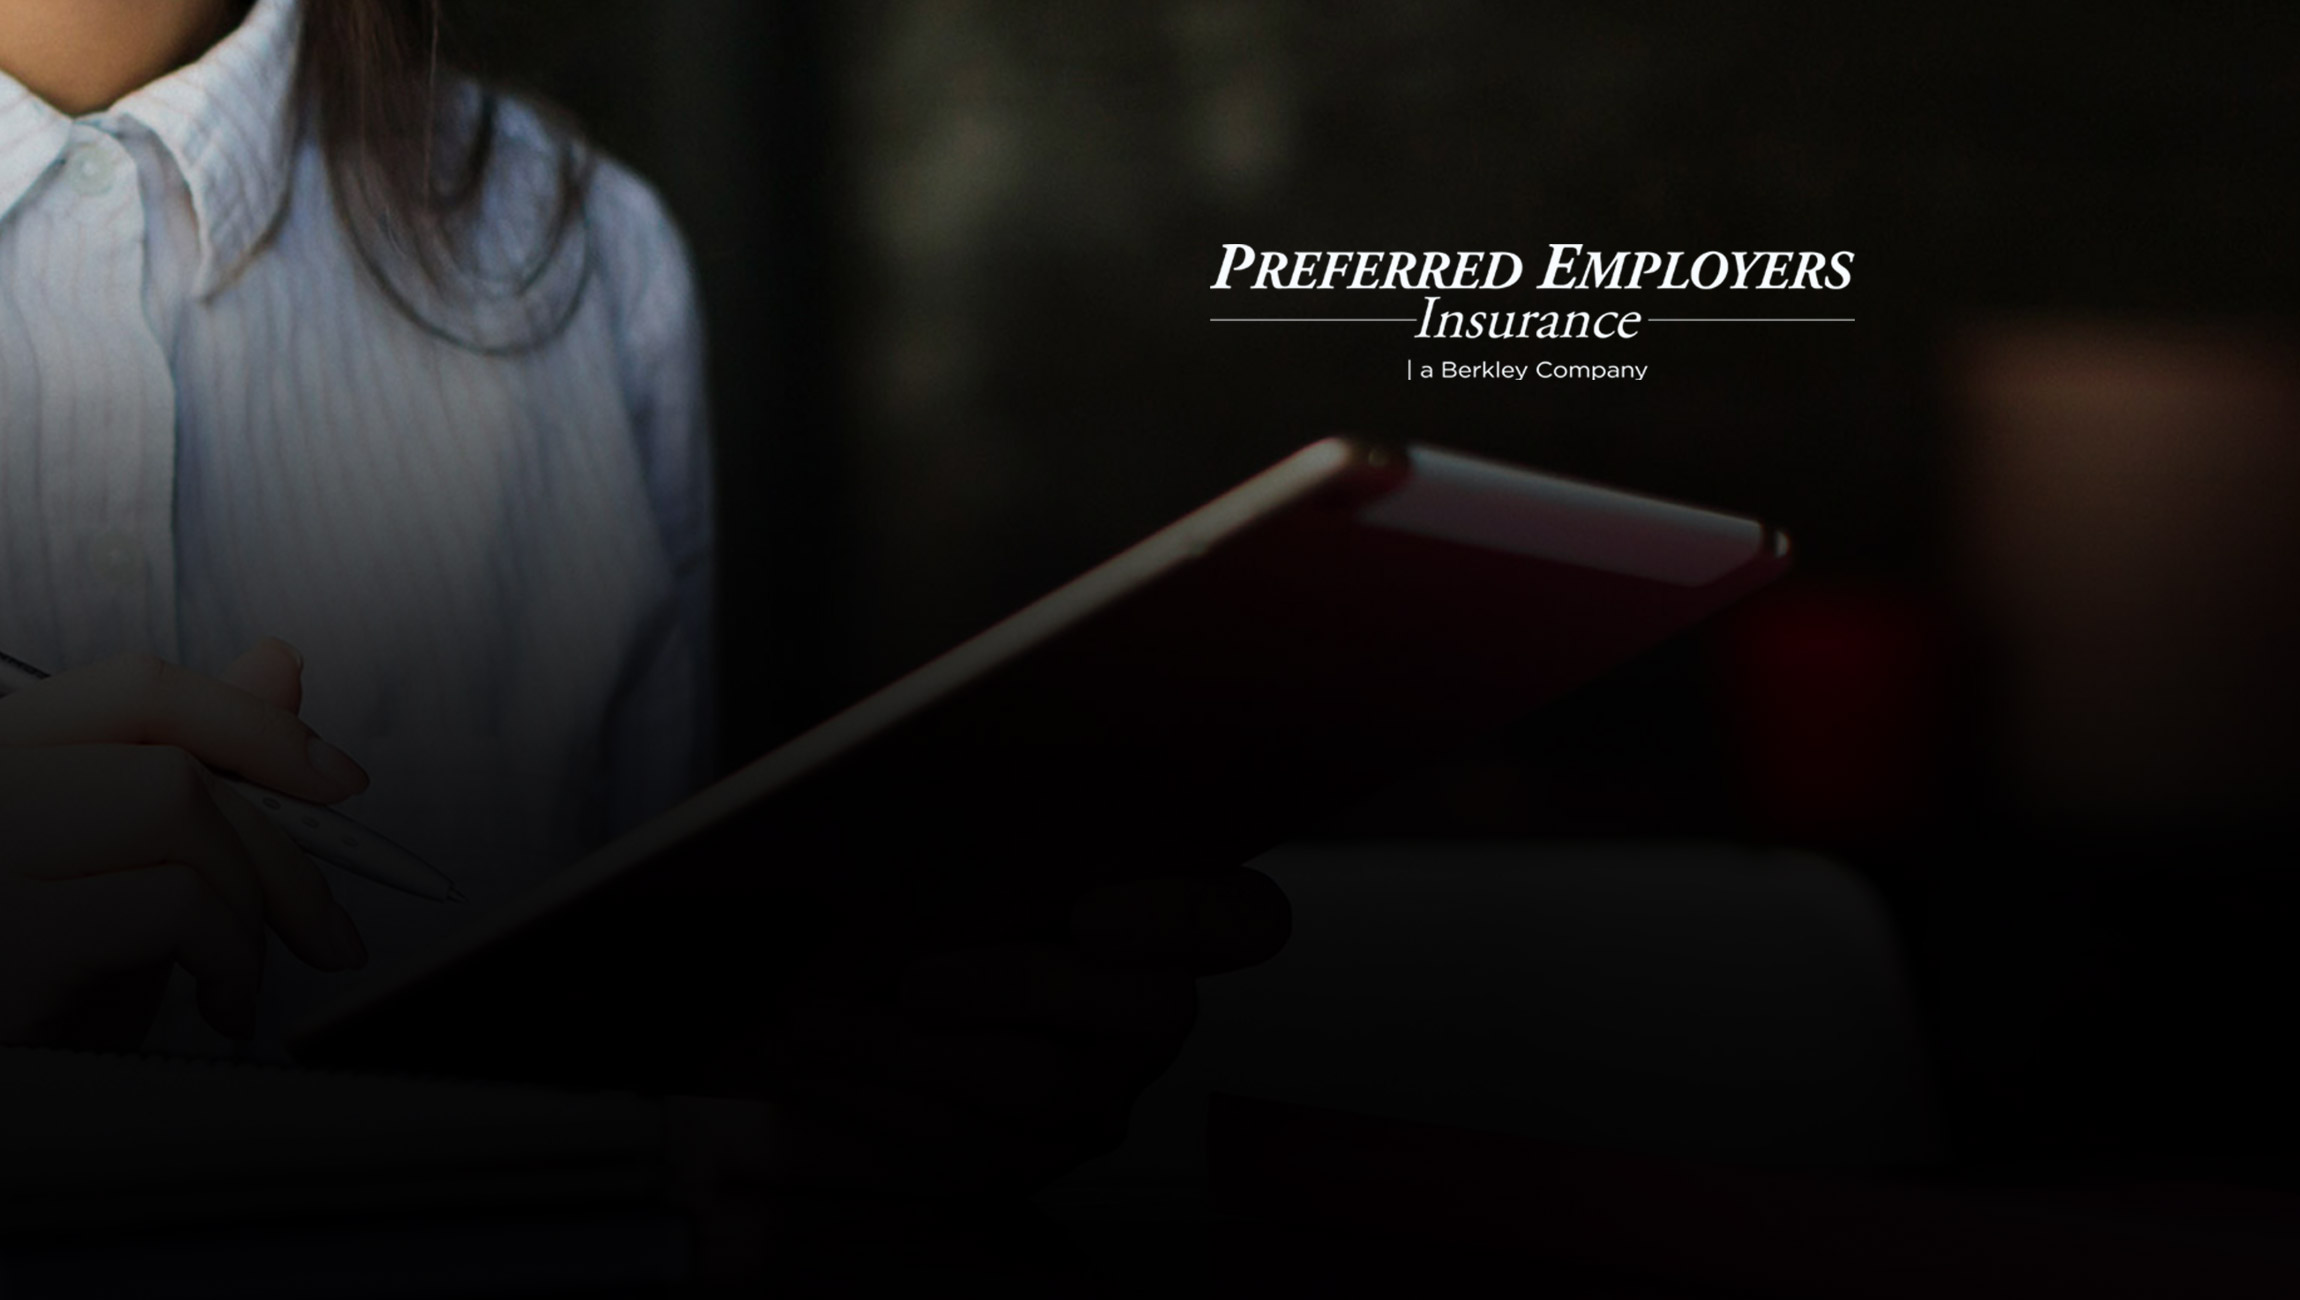 Preferred Employers Insurance Introduces New and Improved Workplace Safety Service